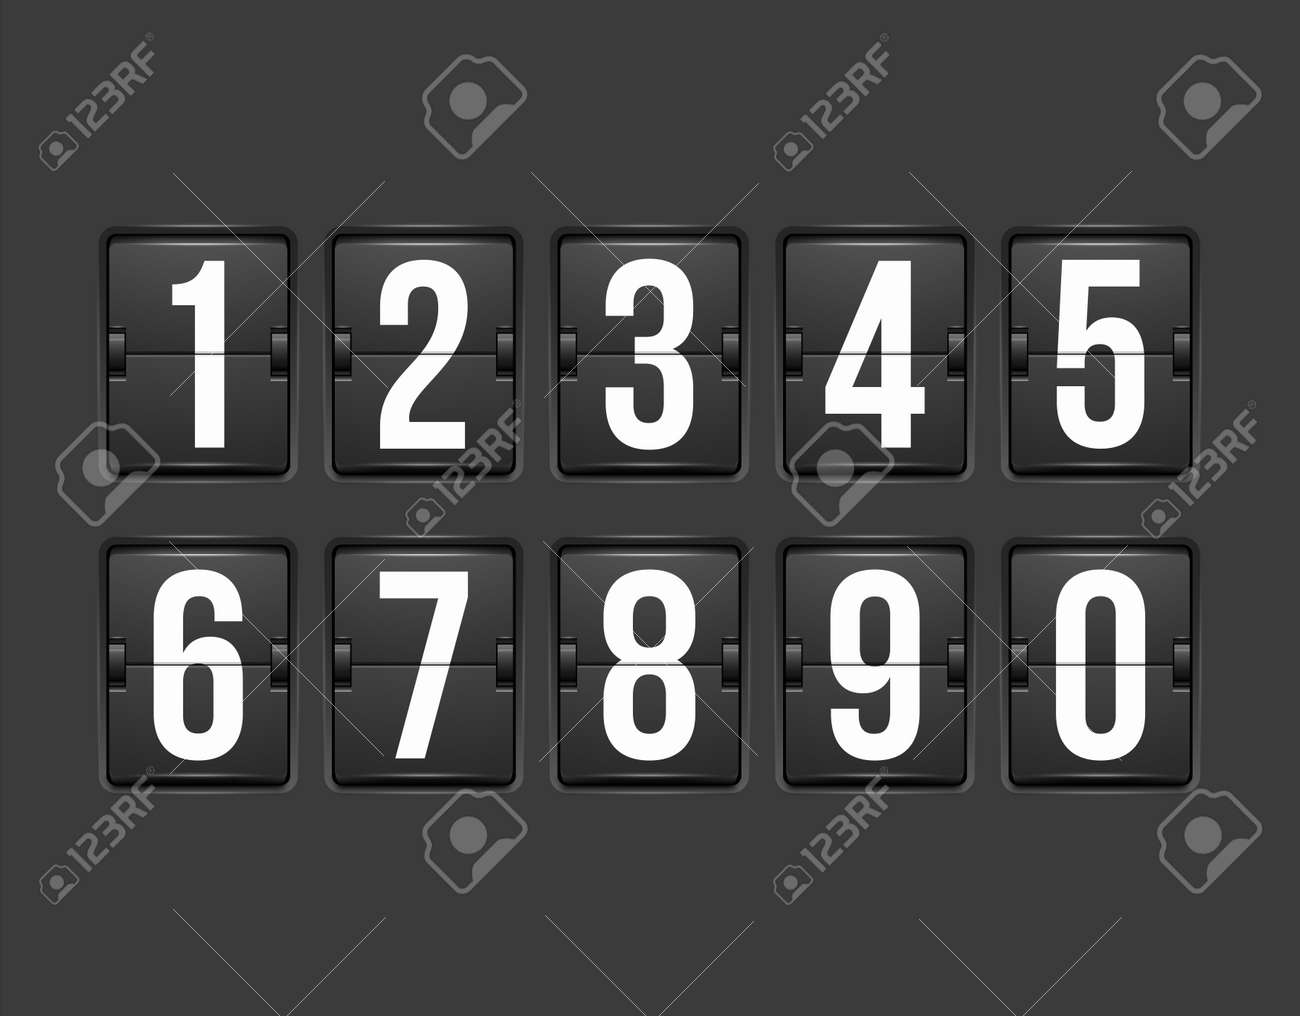 Countdown timer, white color mechanical scoreboard with different